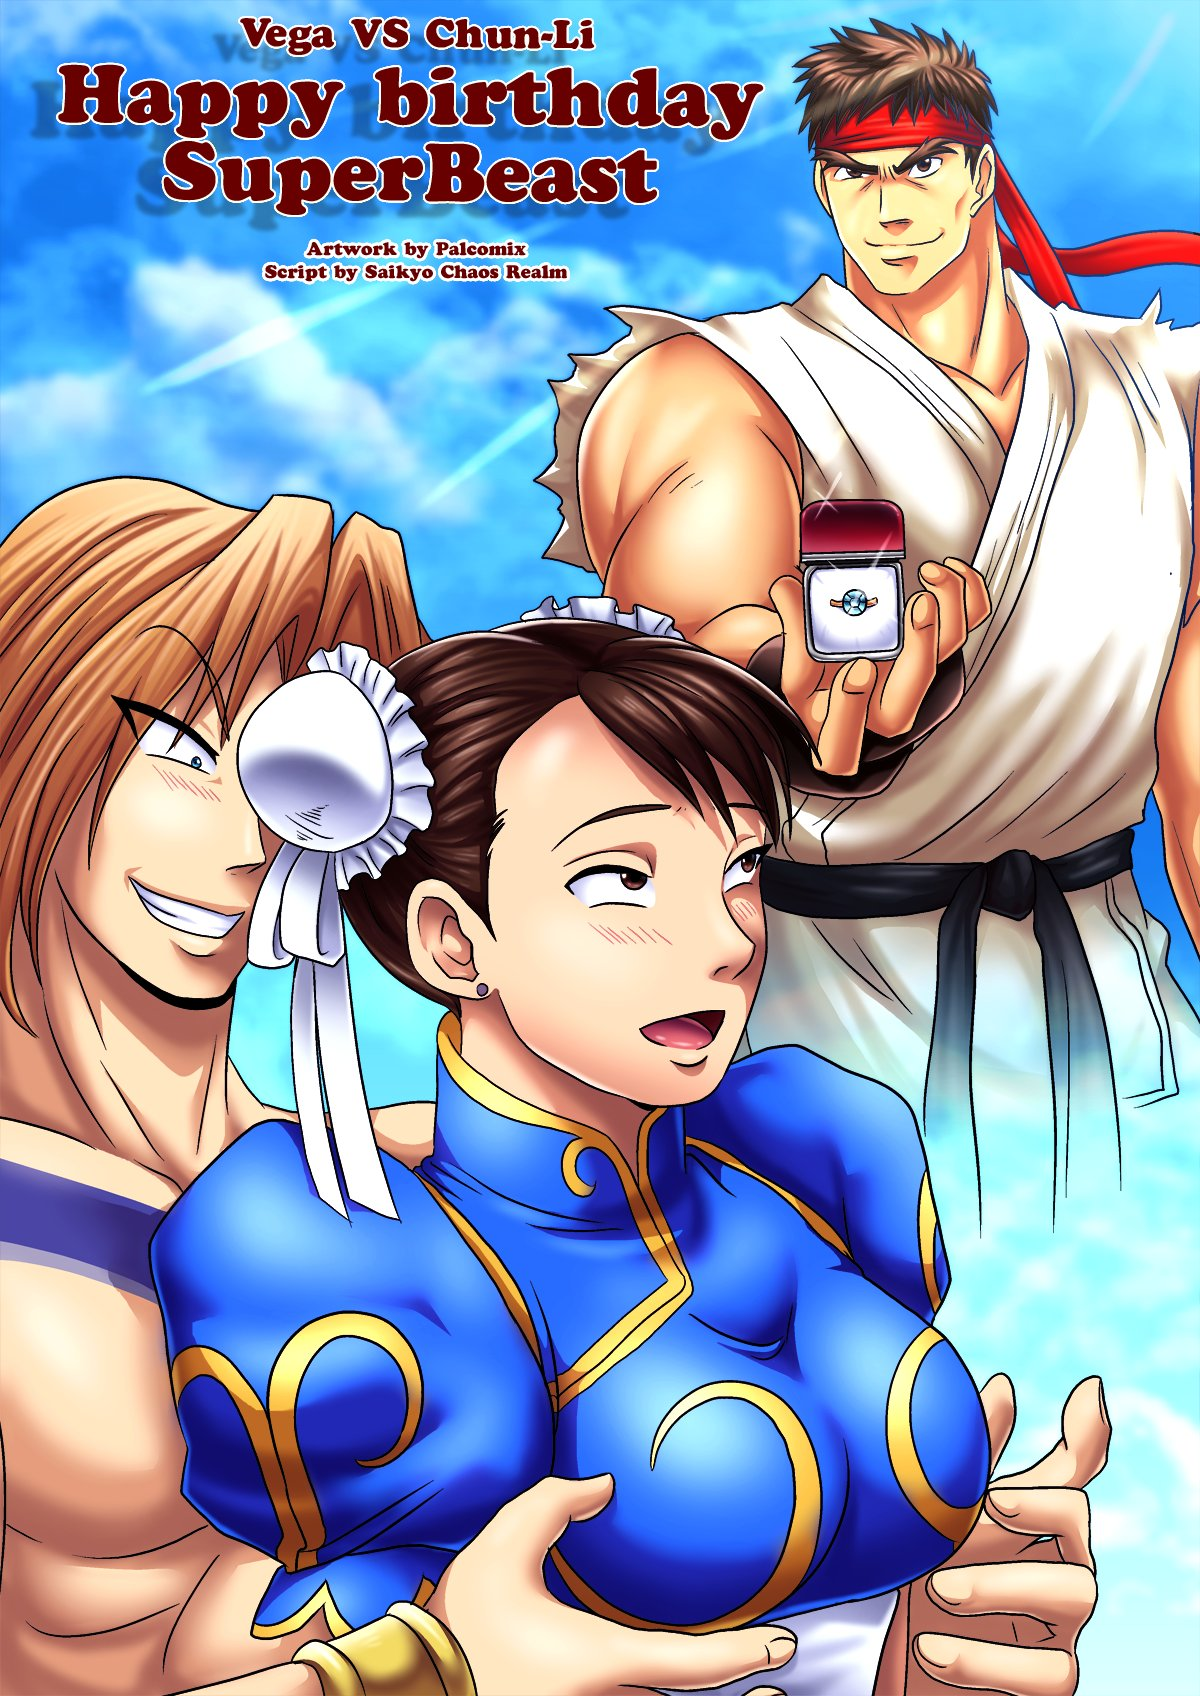 surefap.org__Vega-vs-Chun-Li-2-Happy-Birthday-Superbeast-page01-Cover_Gotofap.tk__1263837754_1879033503.jpg